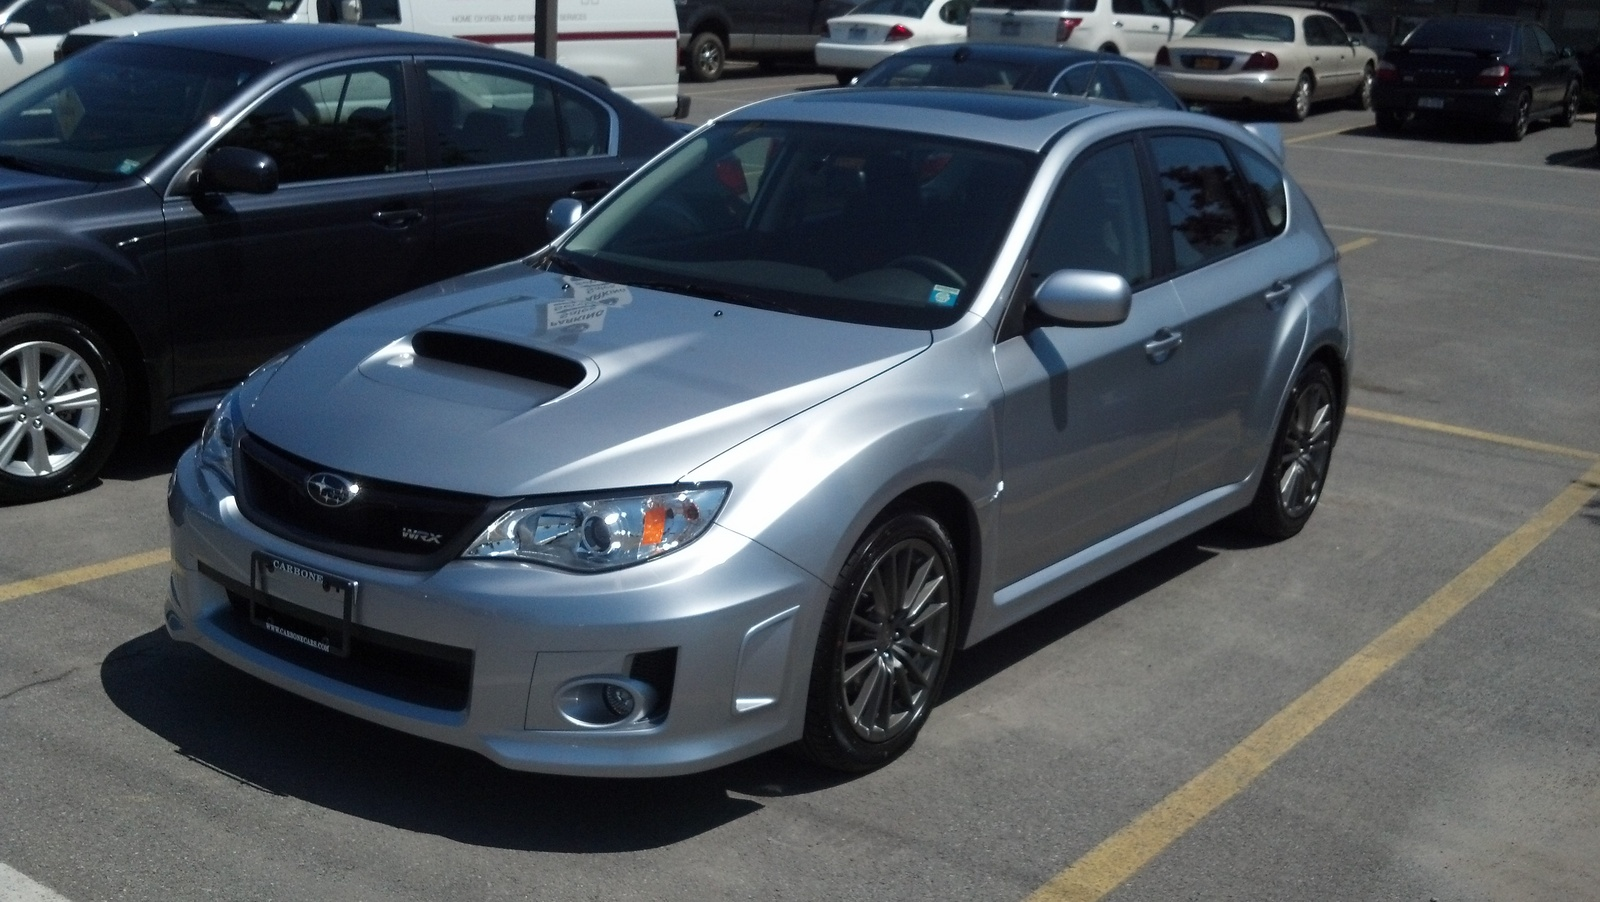 2012 subaru impreza wrx pictures cargurus. Black Bedroom Furniture Sets. Home Design Ideas